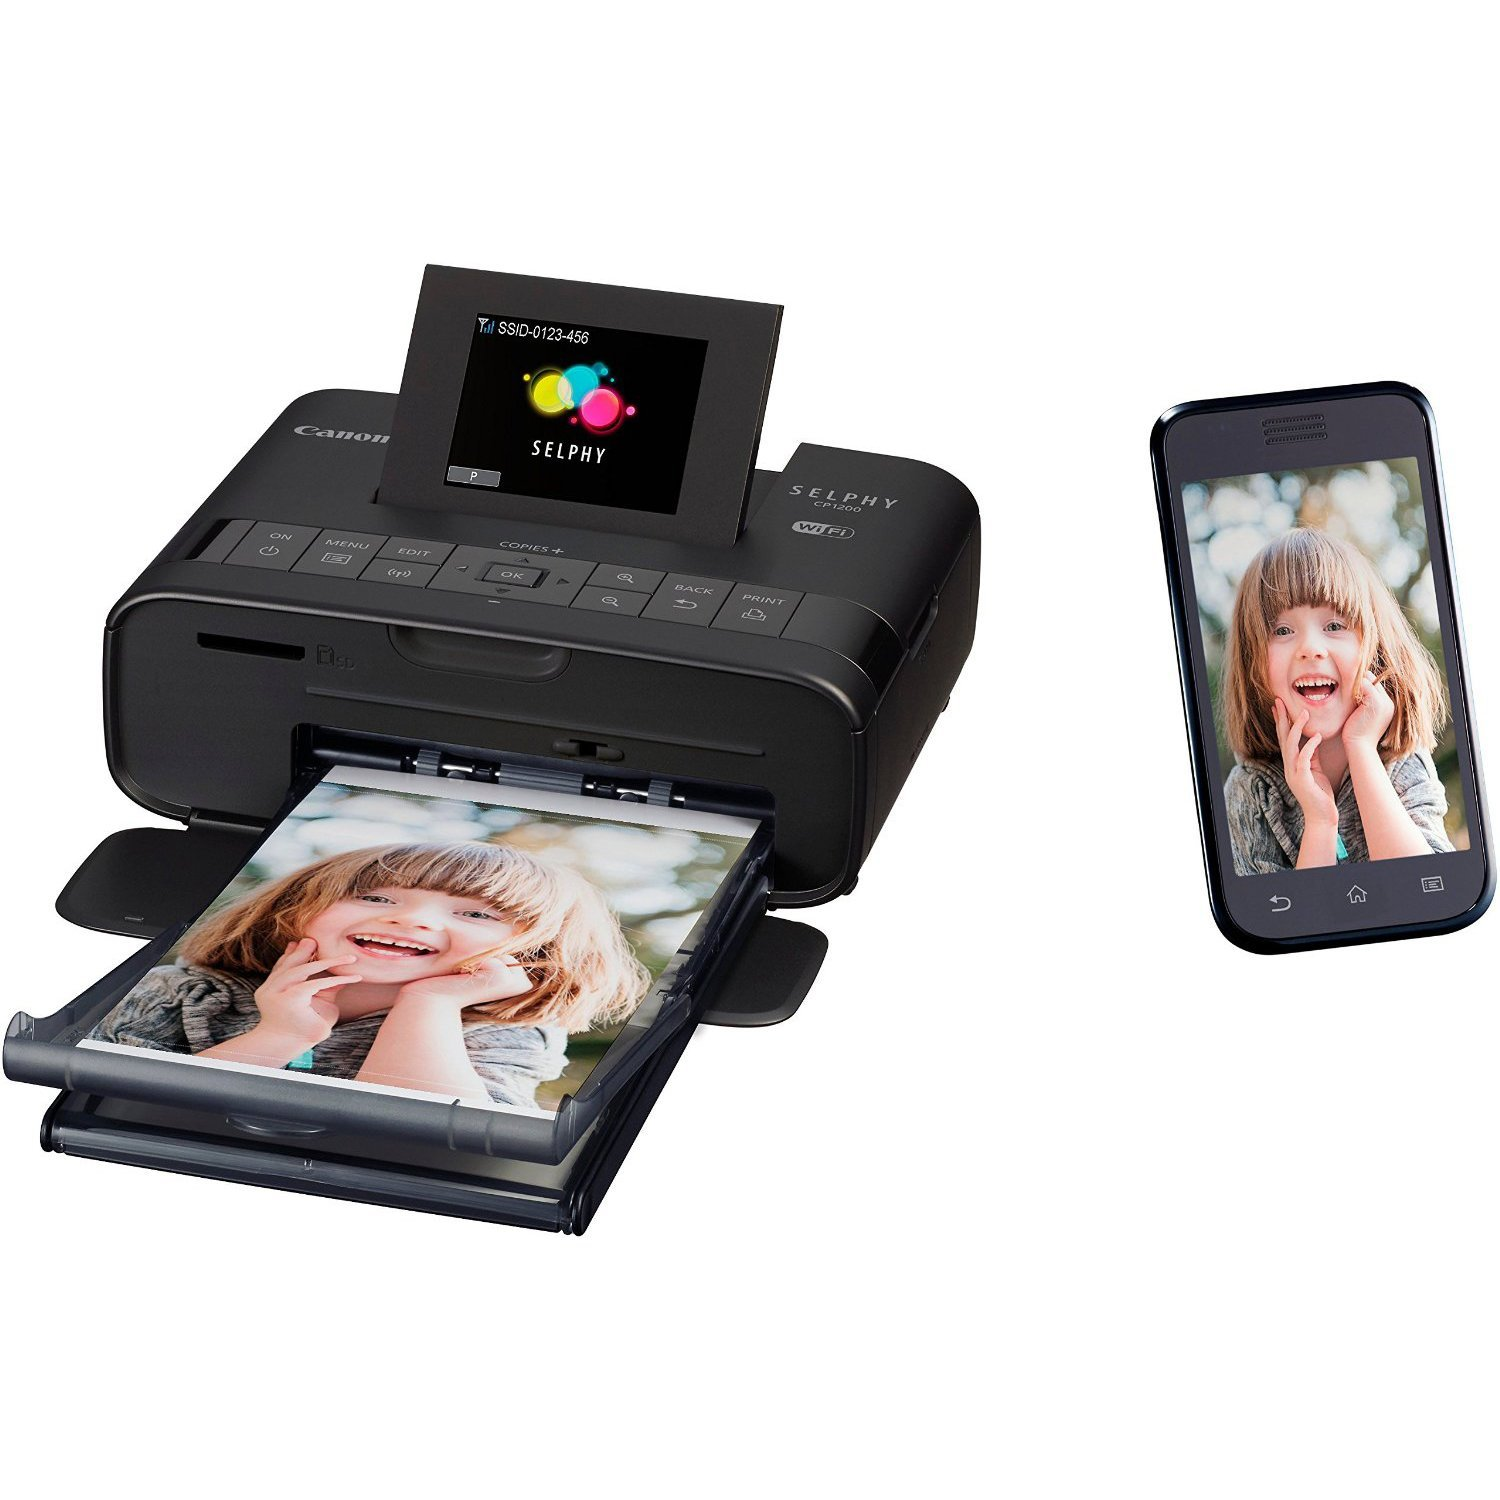 Canon Selphy CP1200 Wireless Color Photo Printer (Black) + USB Printer Cable + HeroFiber Ultra Gentle Cleaning Cloth by HeroFiber (Image #4)